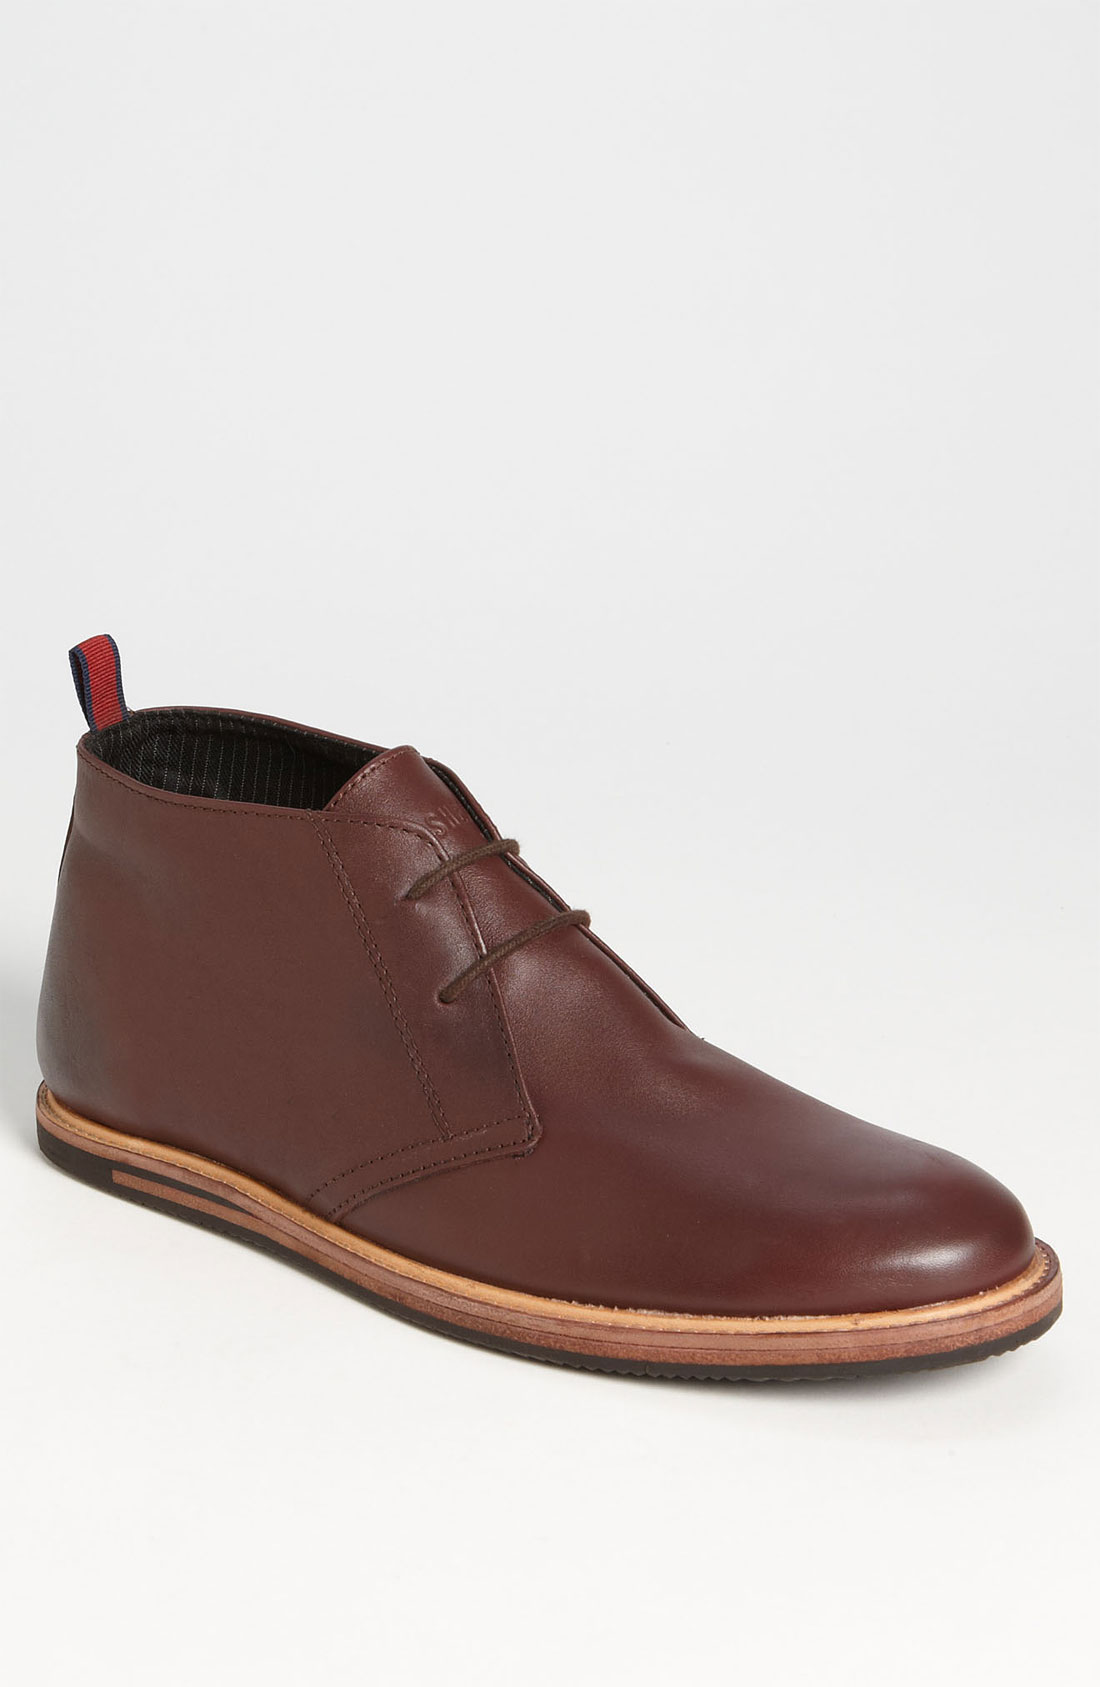 Red Wing Shoes Aberdeen